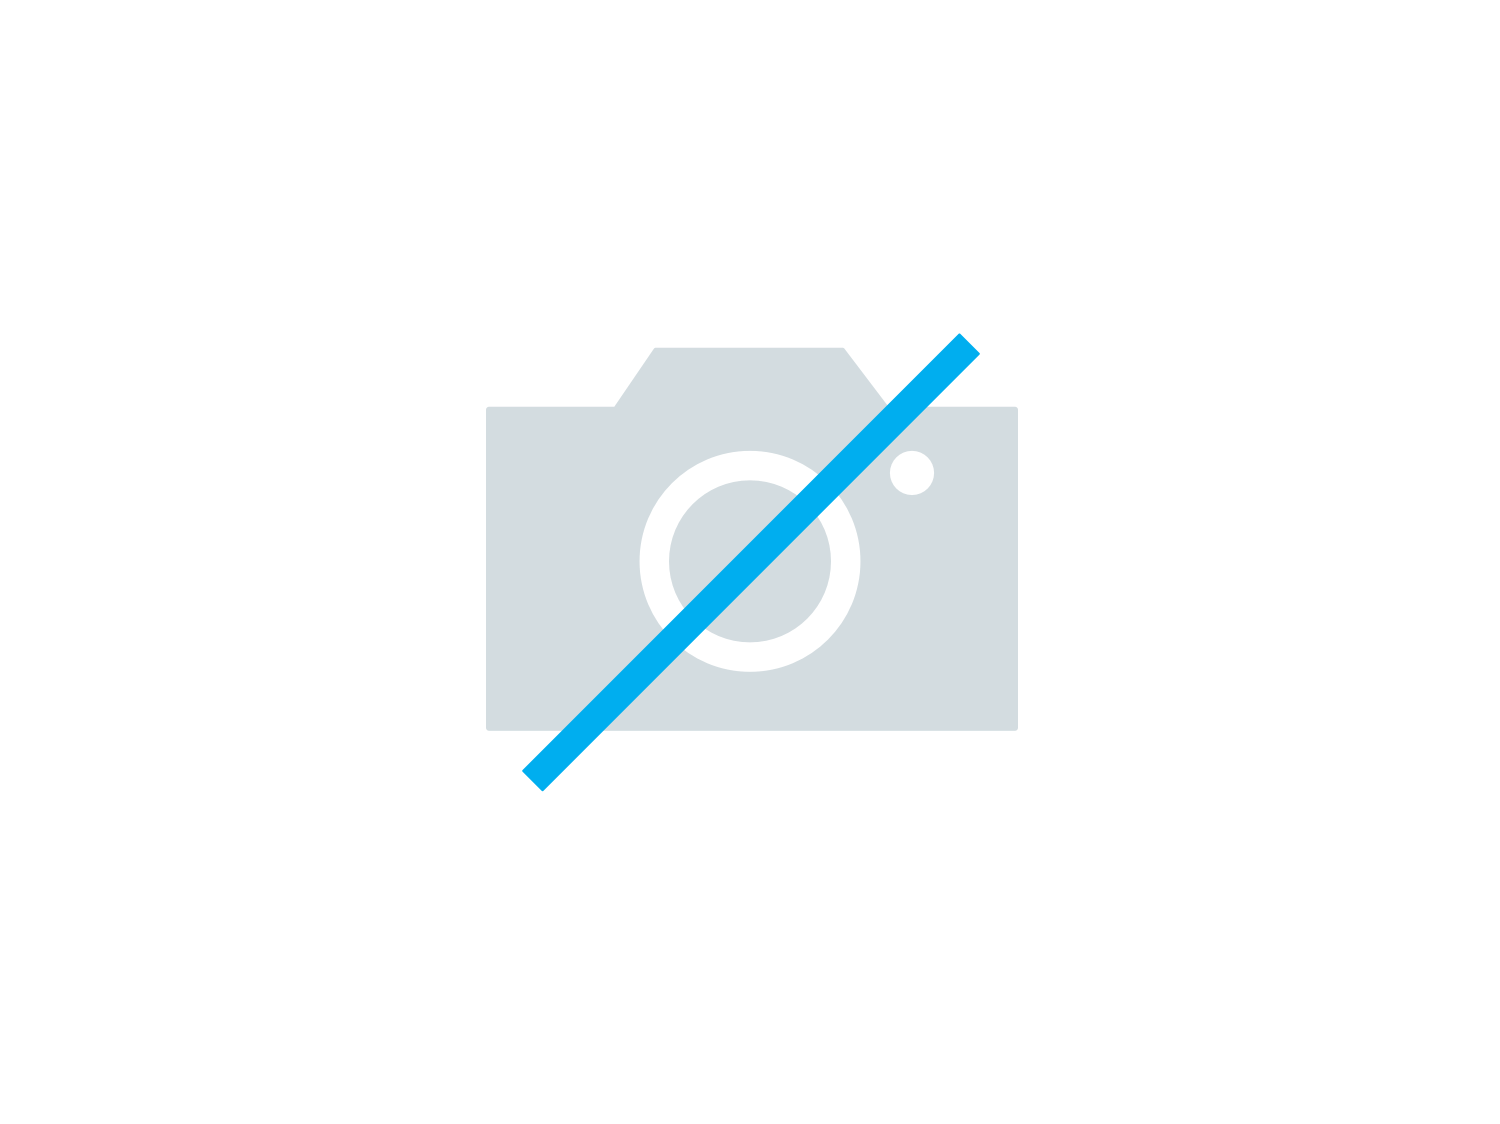 Matras Km41b polyether 60x120cm